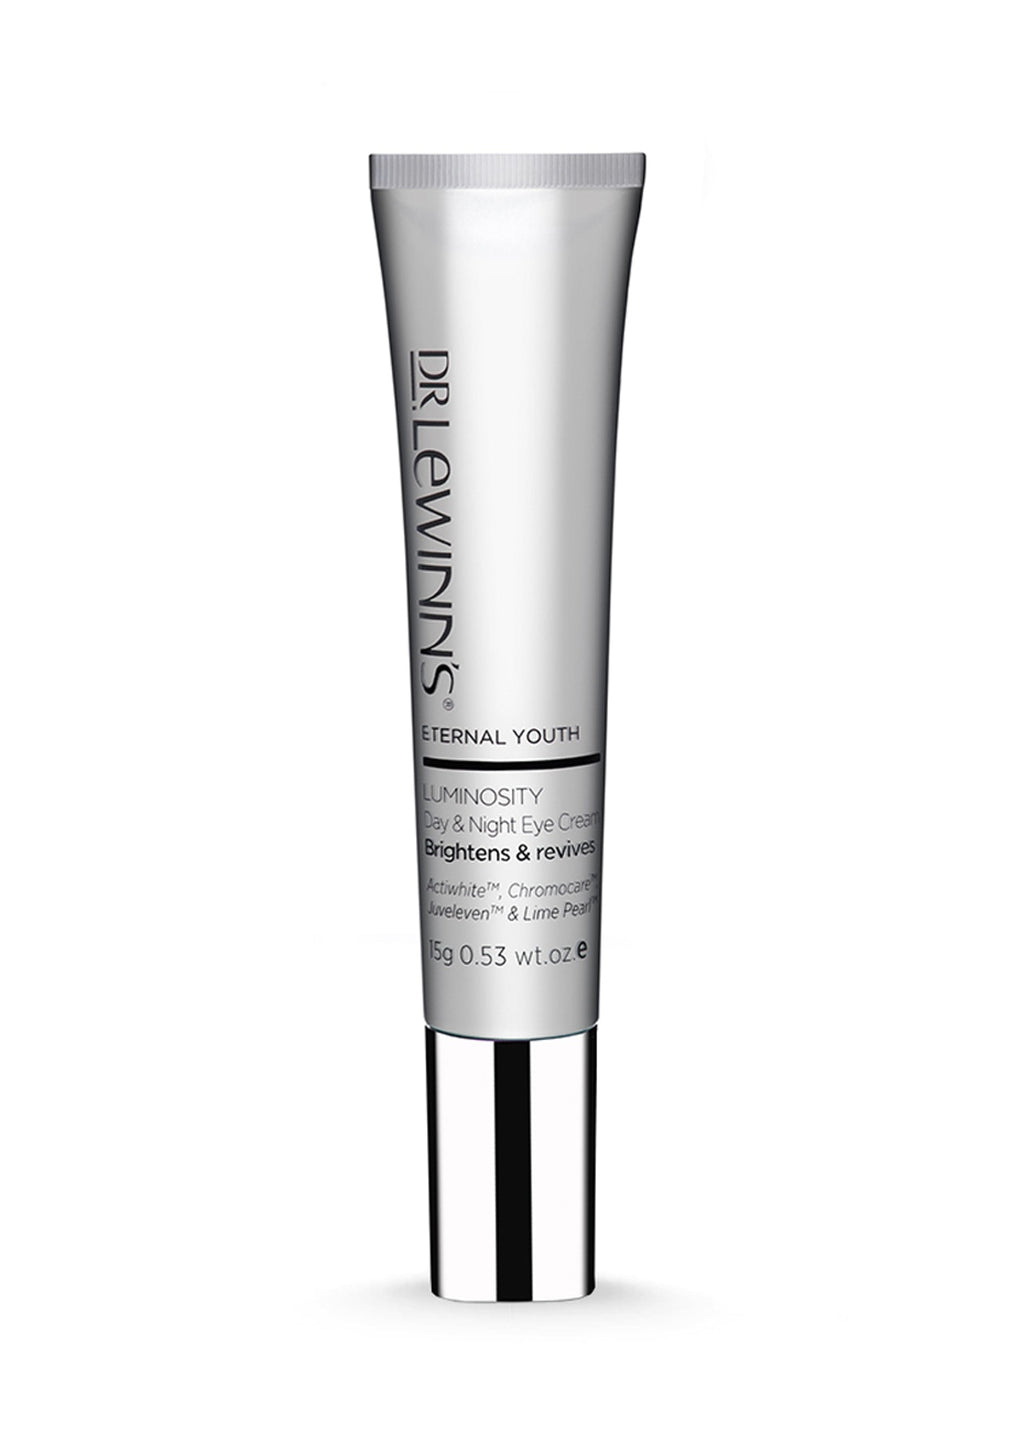 Dr Lewinns Eternal Youth Luminosity Day & Night Eye Cream 15G